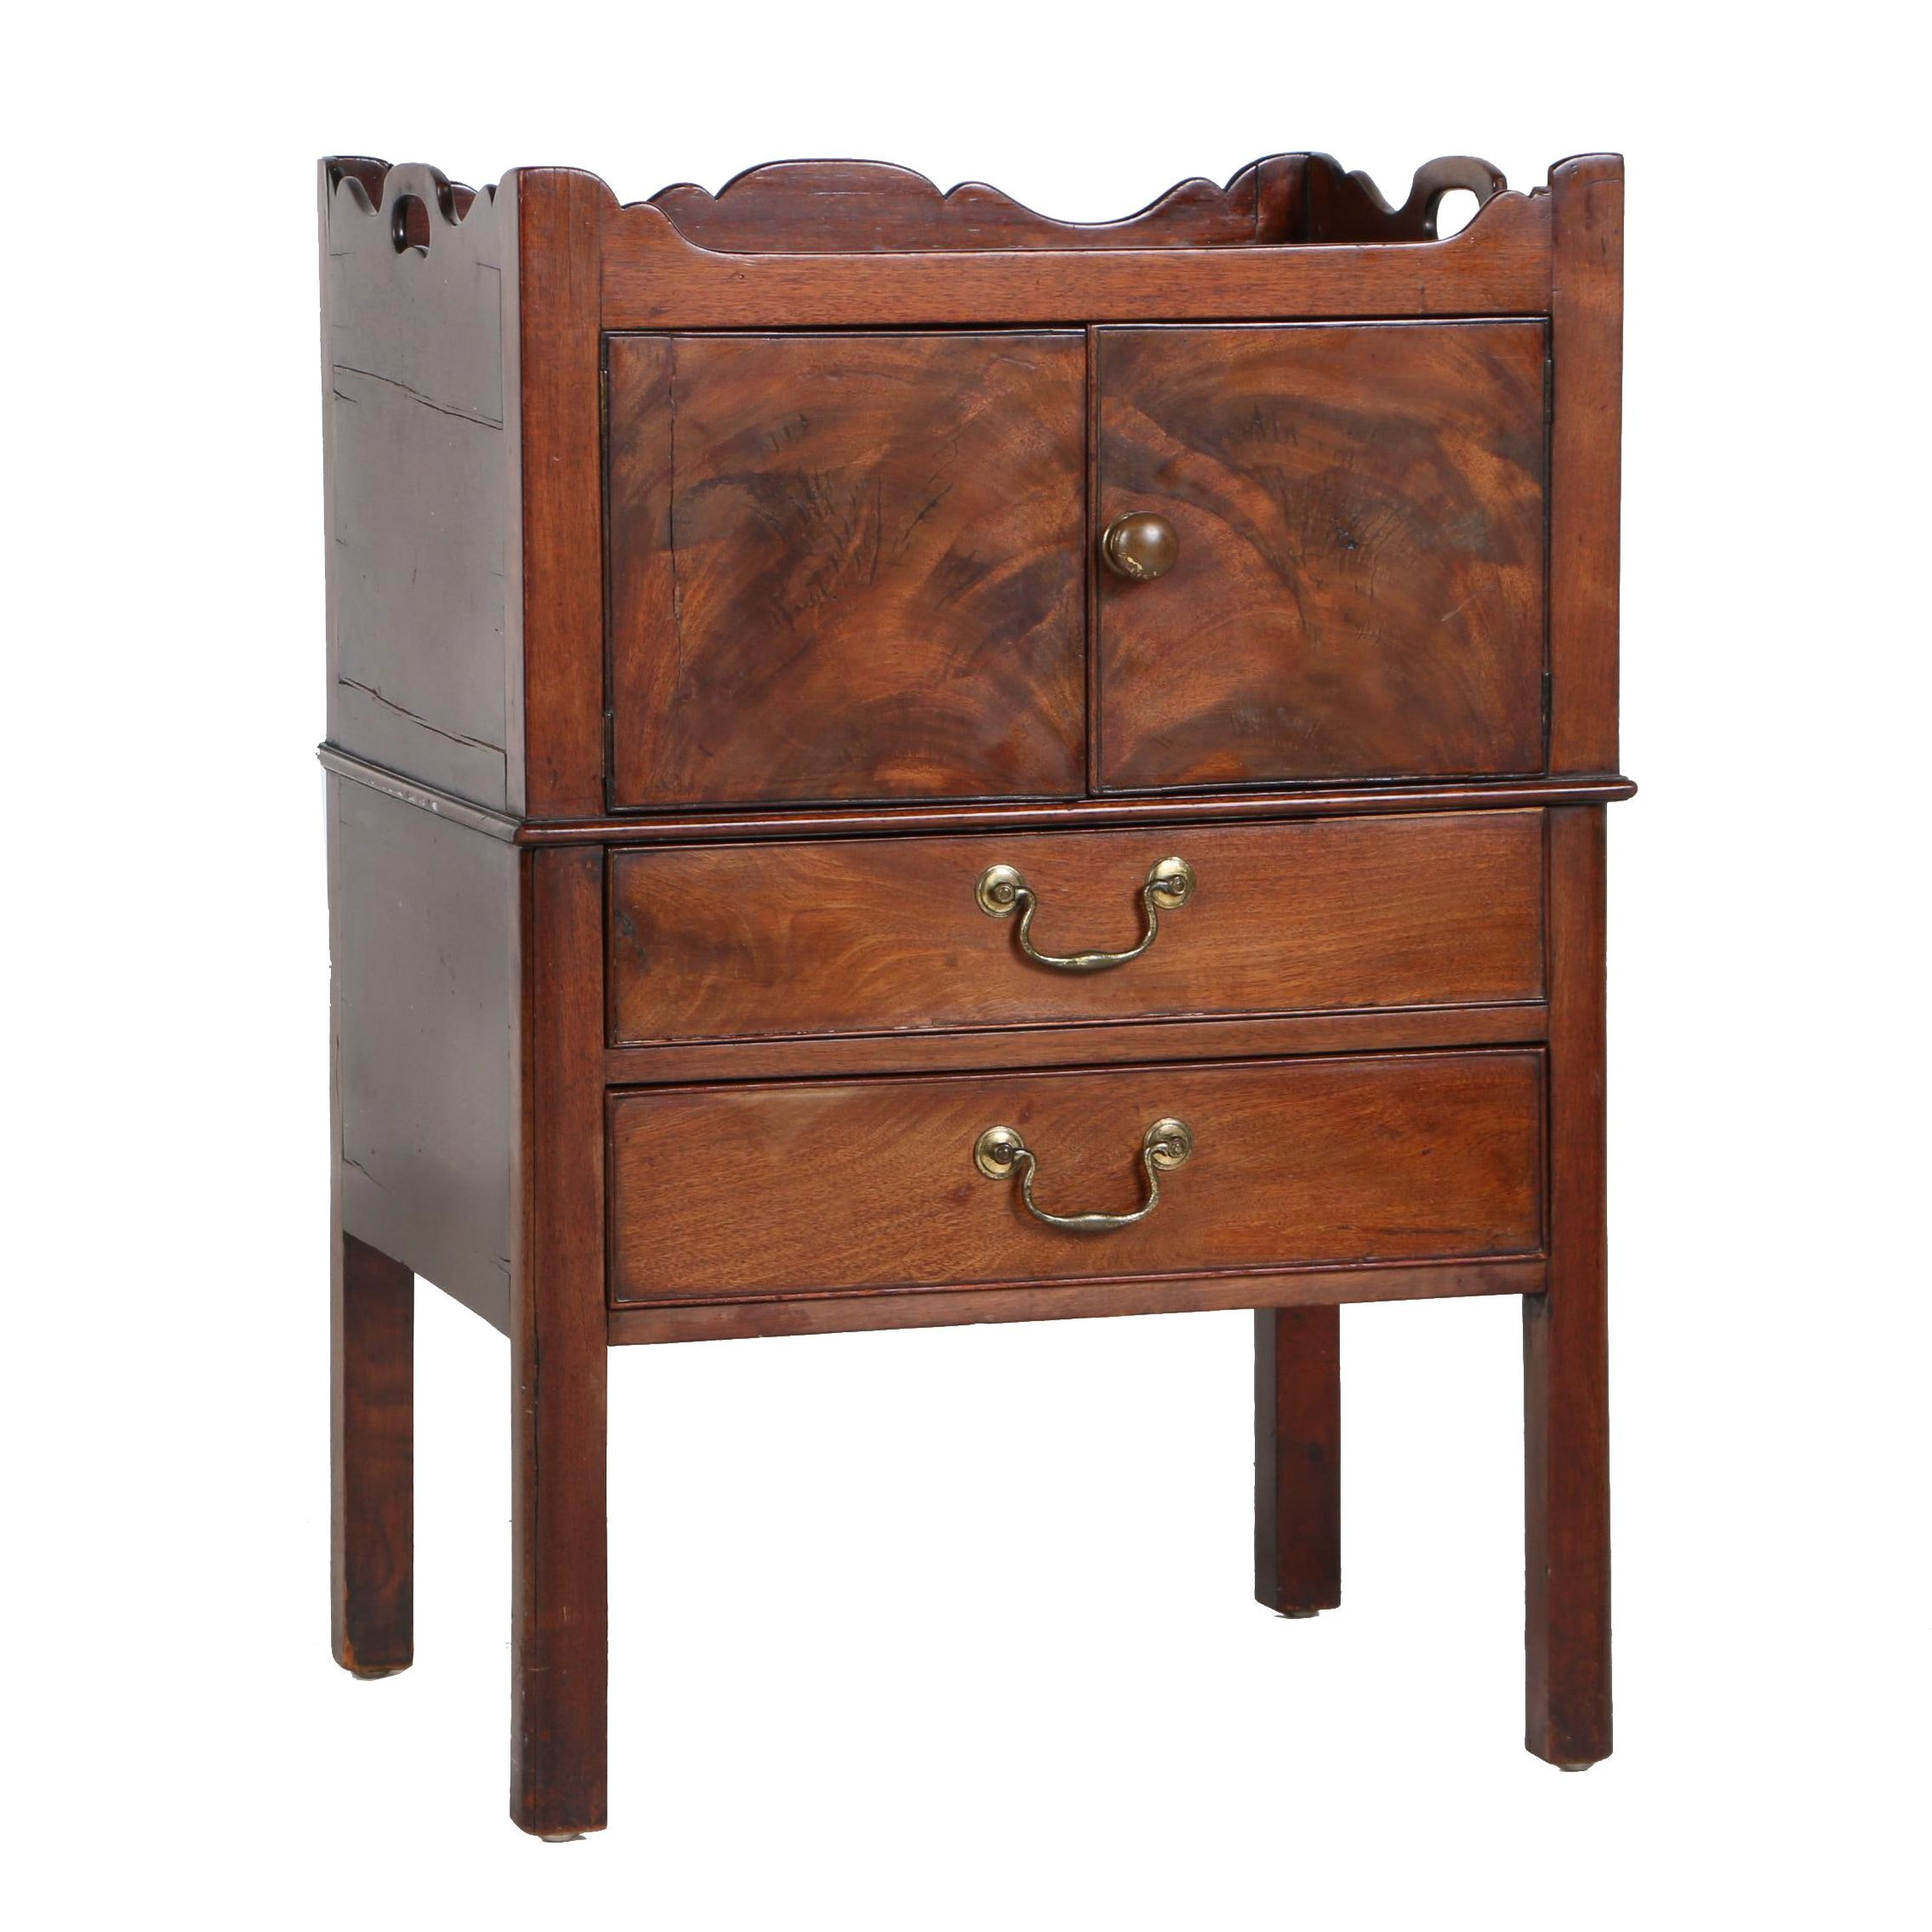 George III Mahogany Bedside Cabinet, Late 18th Century